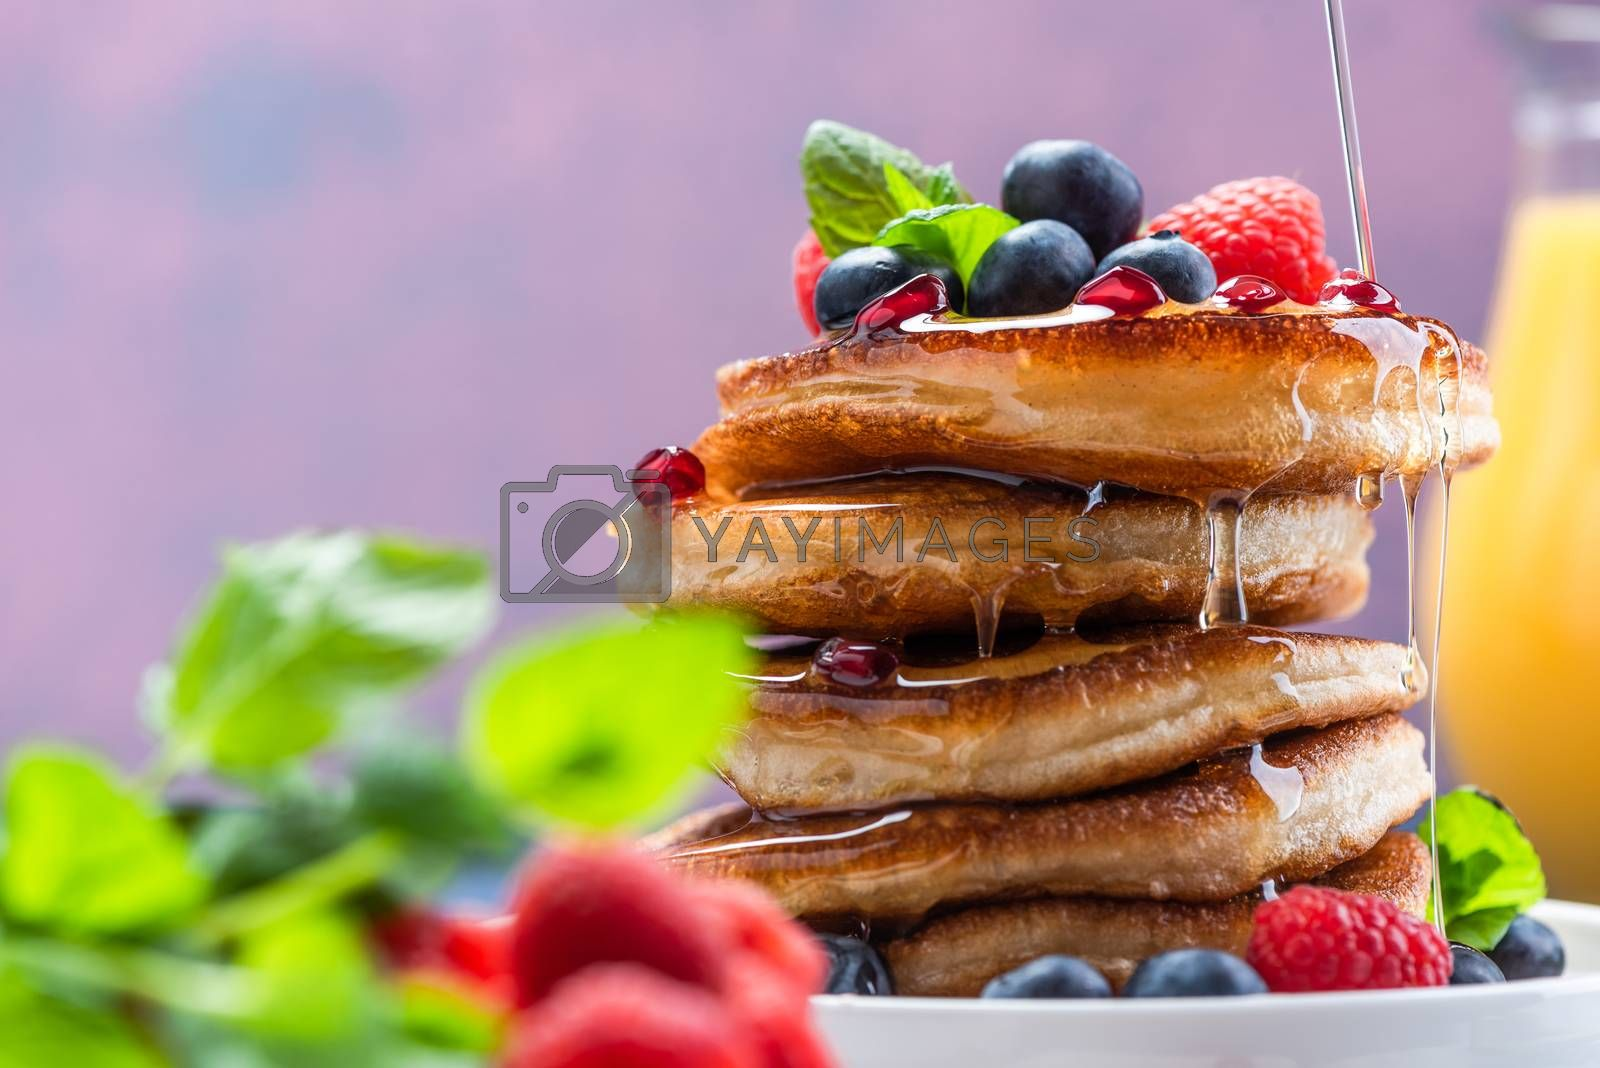 Pouring Maple Syrup on American Pancakes Topped with Fresh Fruits. Shrove Tuesday.